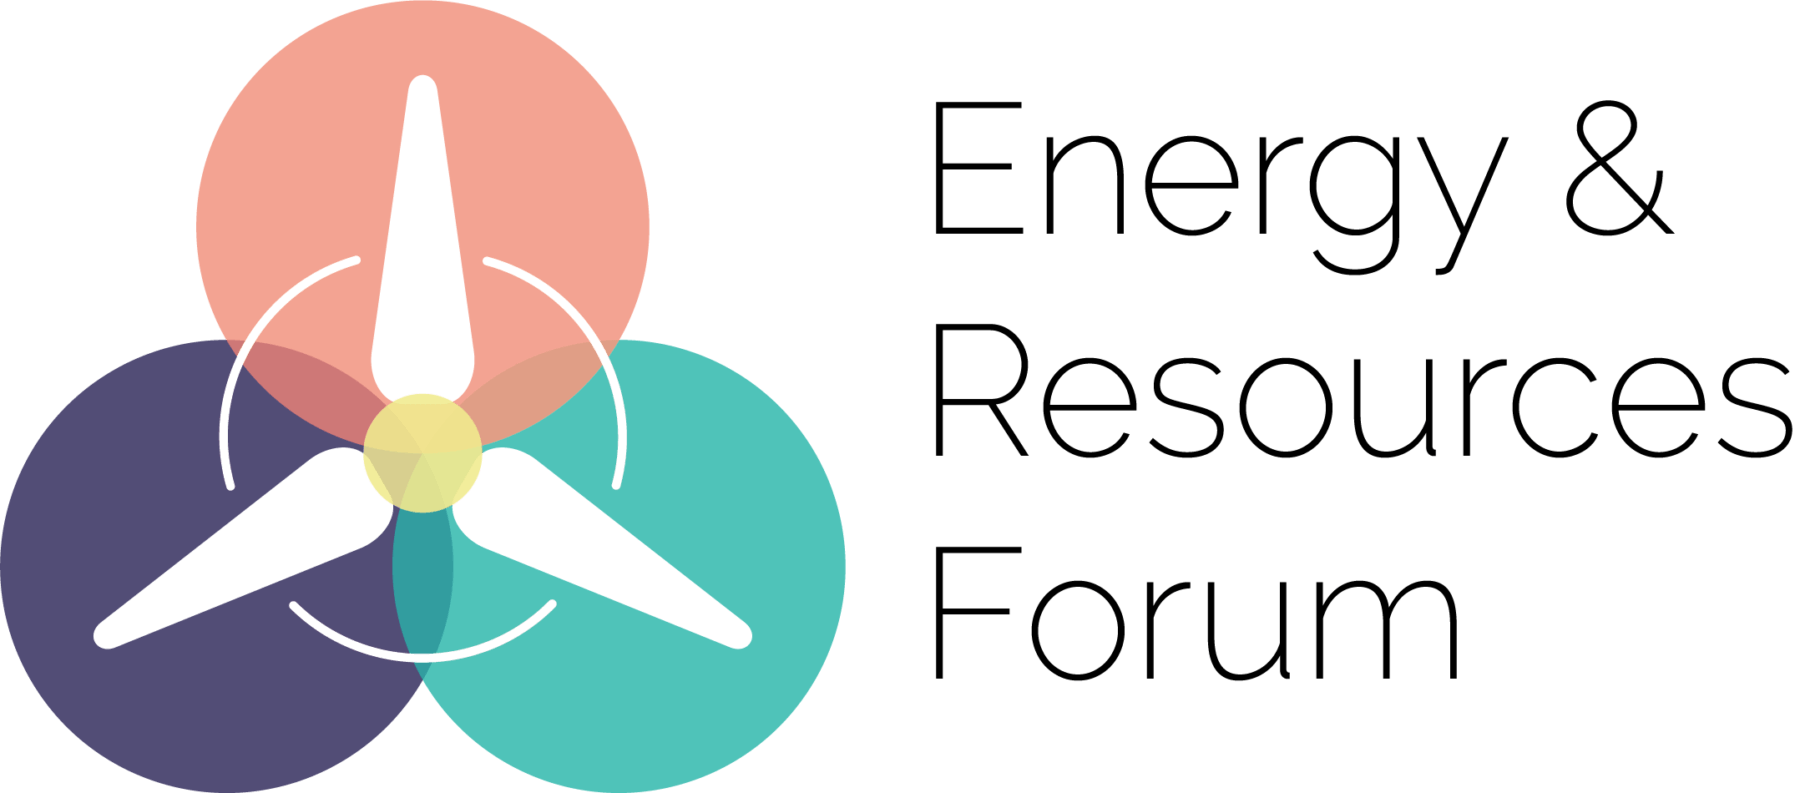 Explore 1 - Energy & Resources Forum 2020 - Zero Emission Group